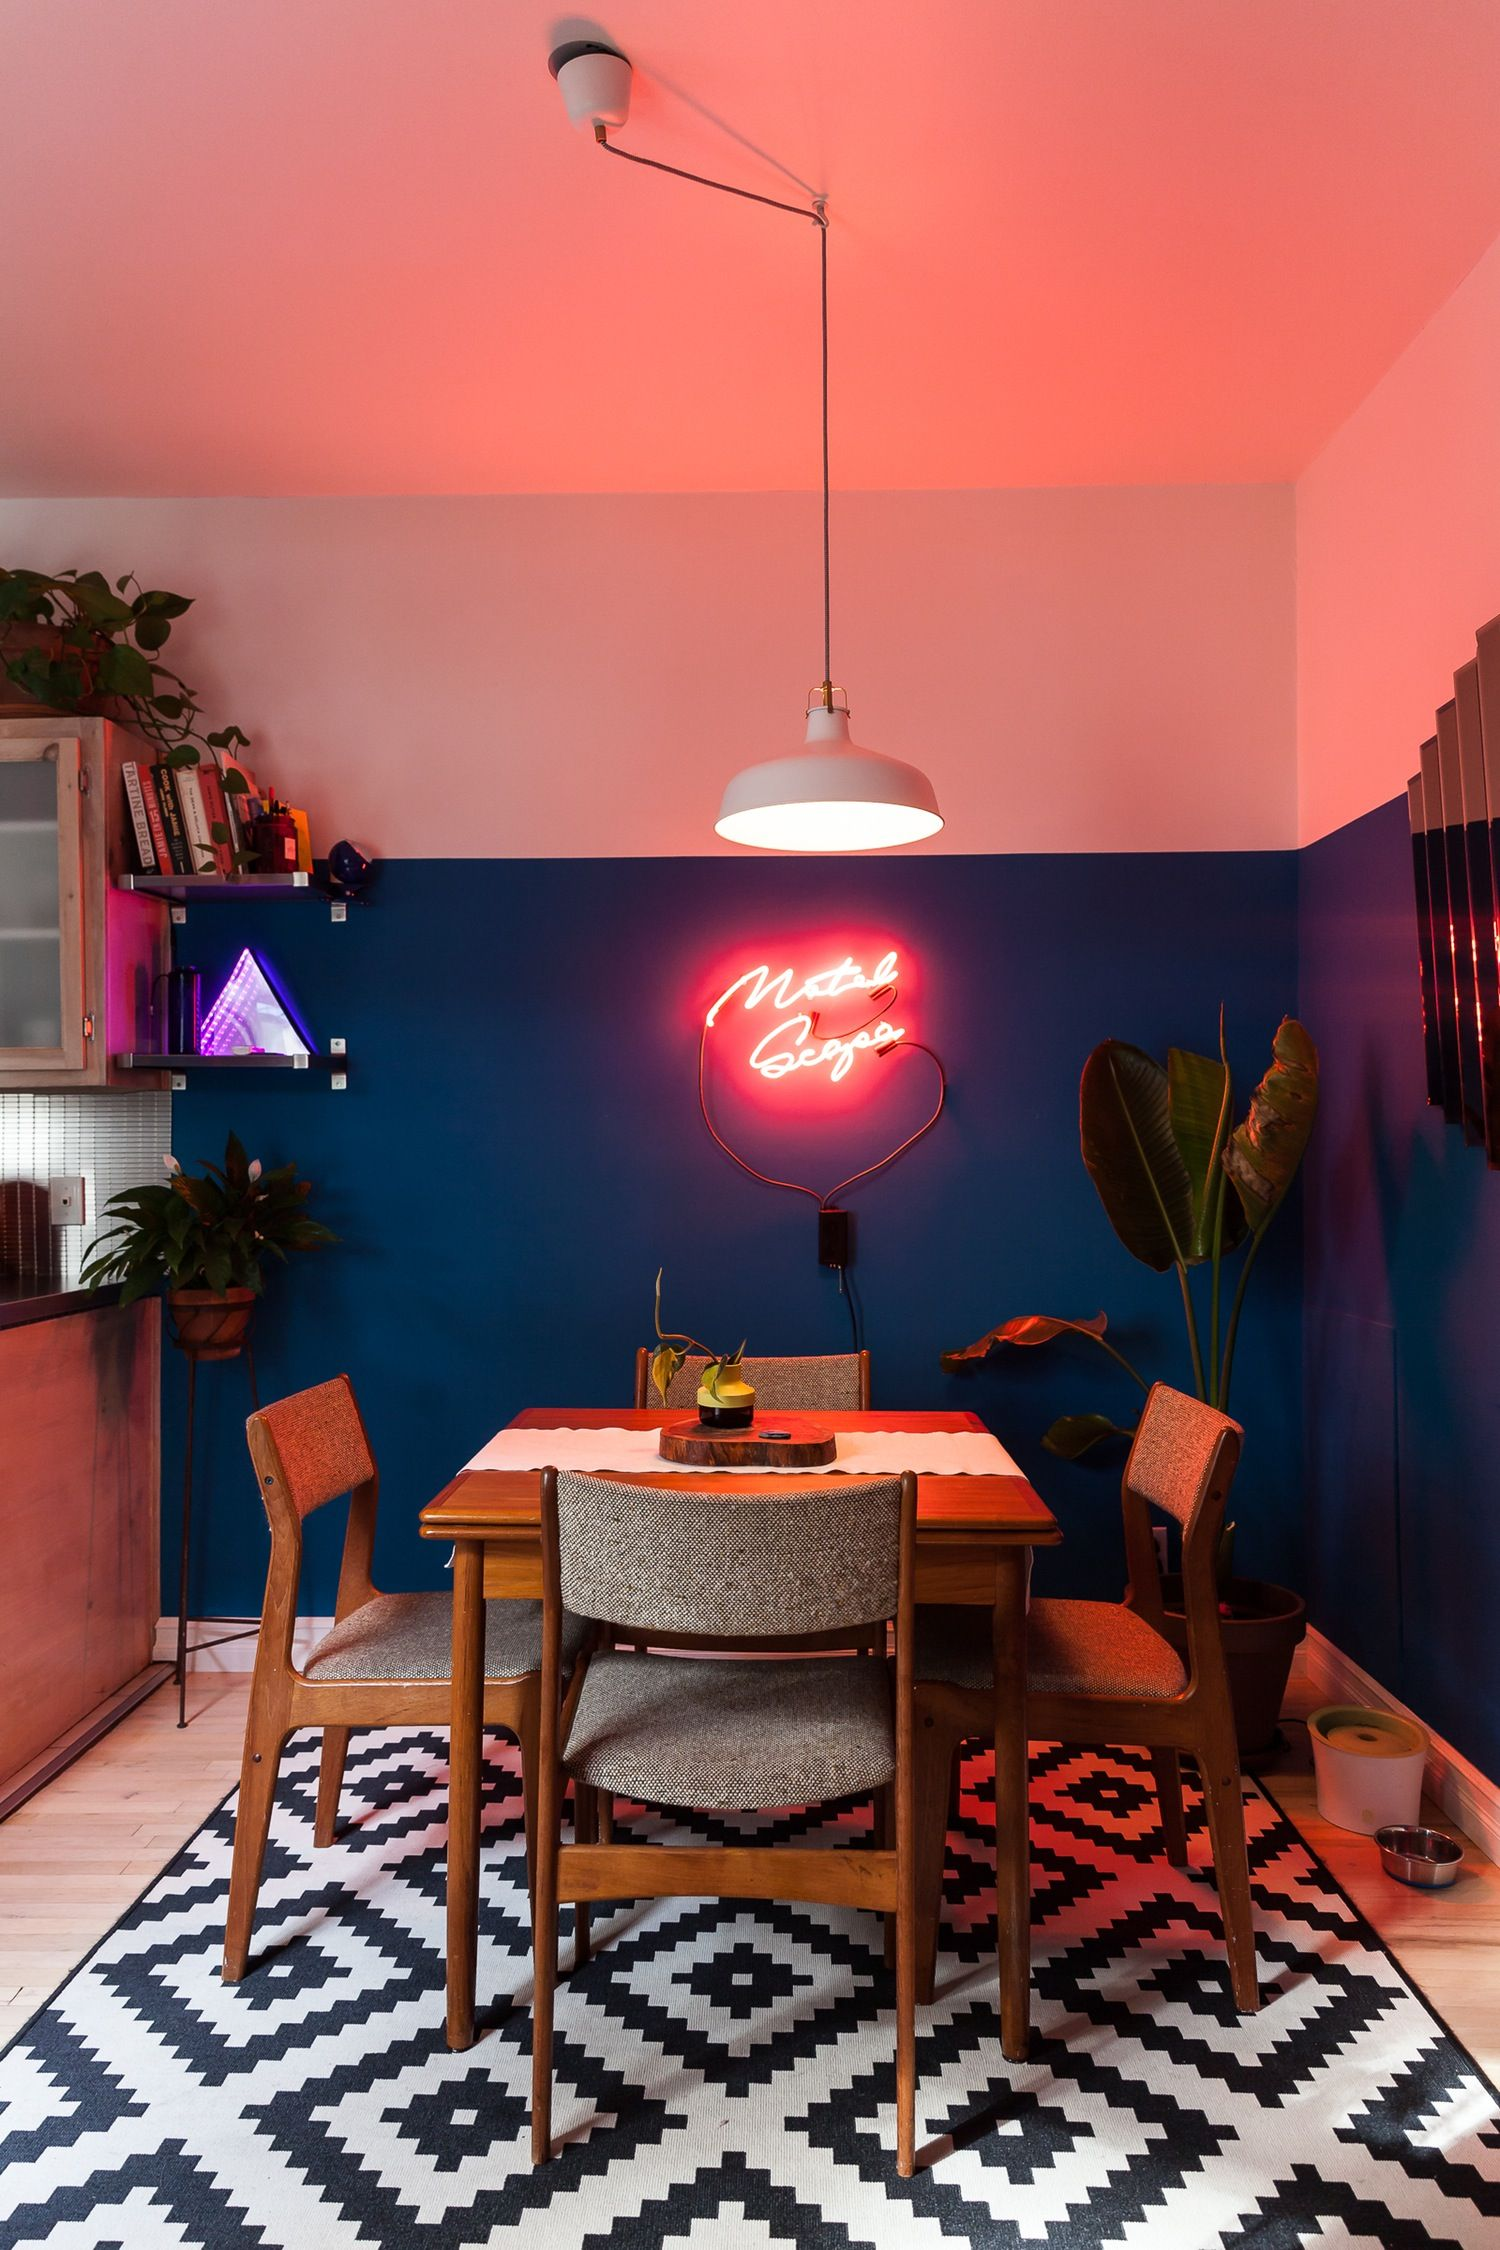 This is how two people with distinct styles can cultivate a well designed home its filled with original neon lights antiques and lots of color